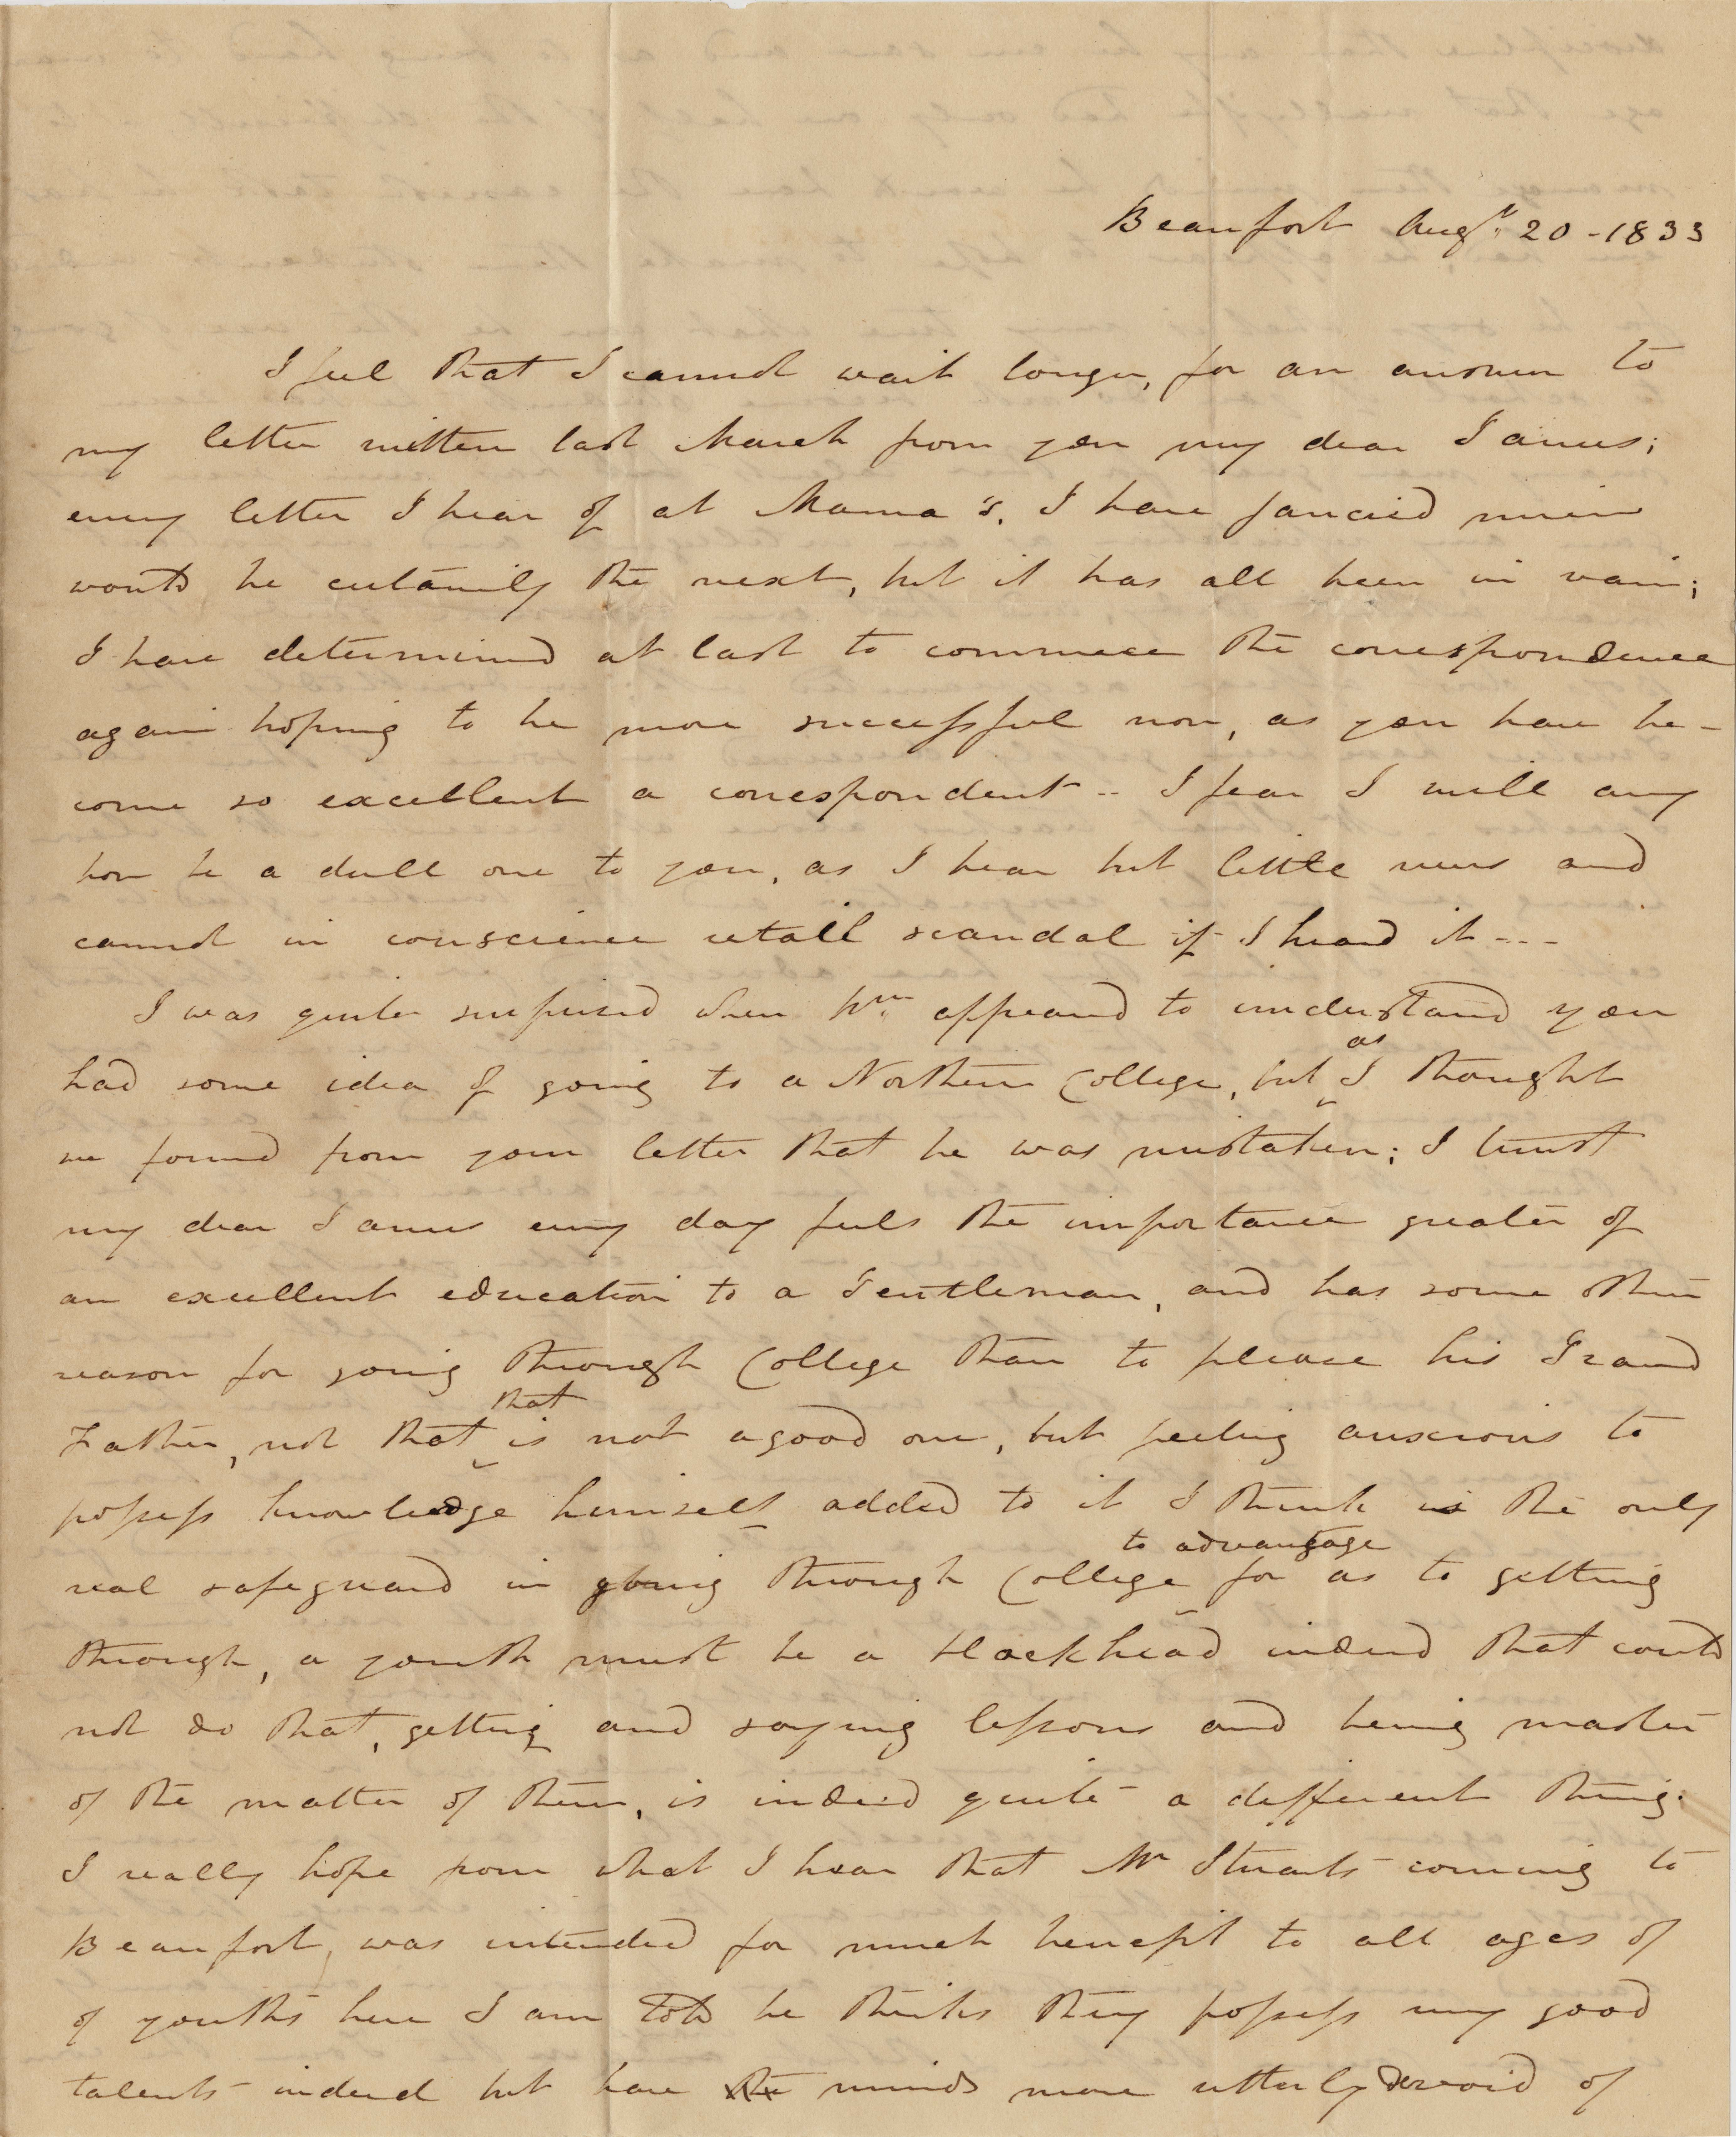 043a. Aunt to James B. Heyward -- August 20, 1833